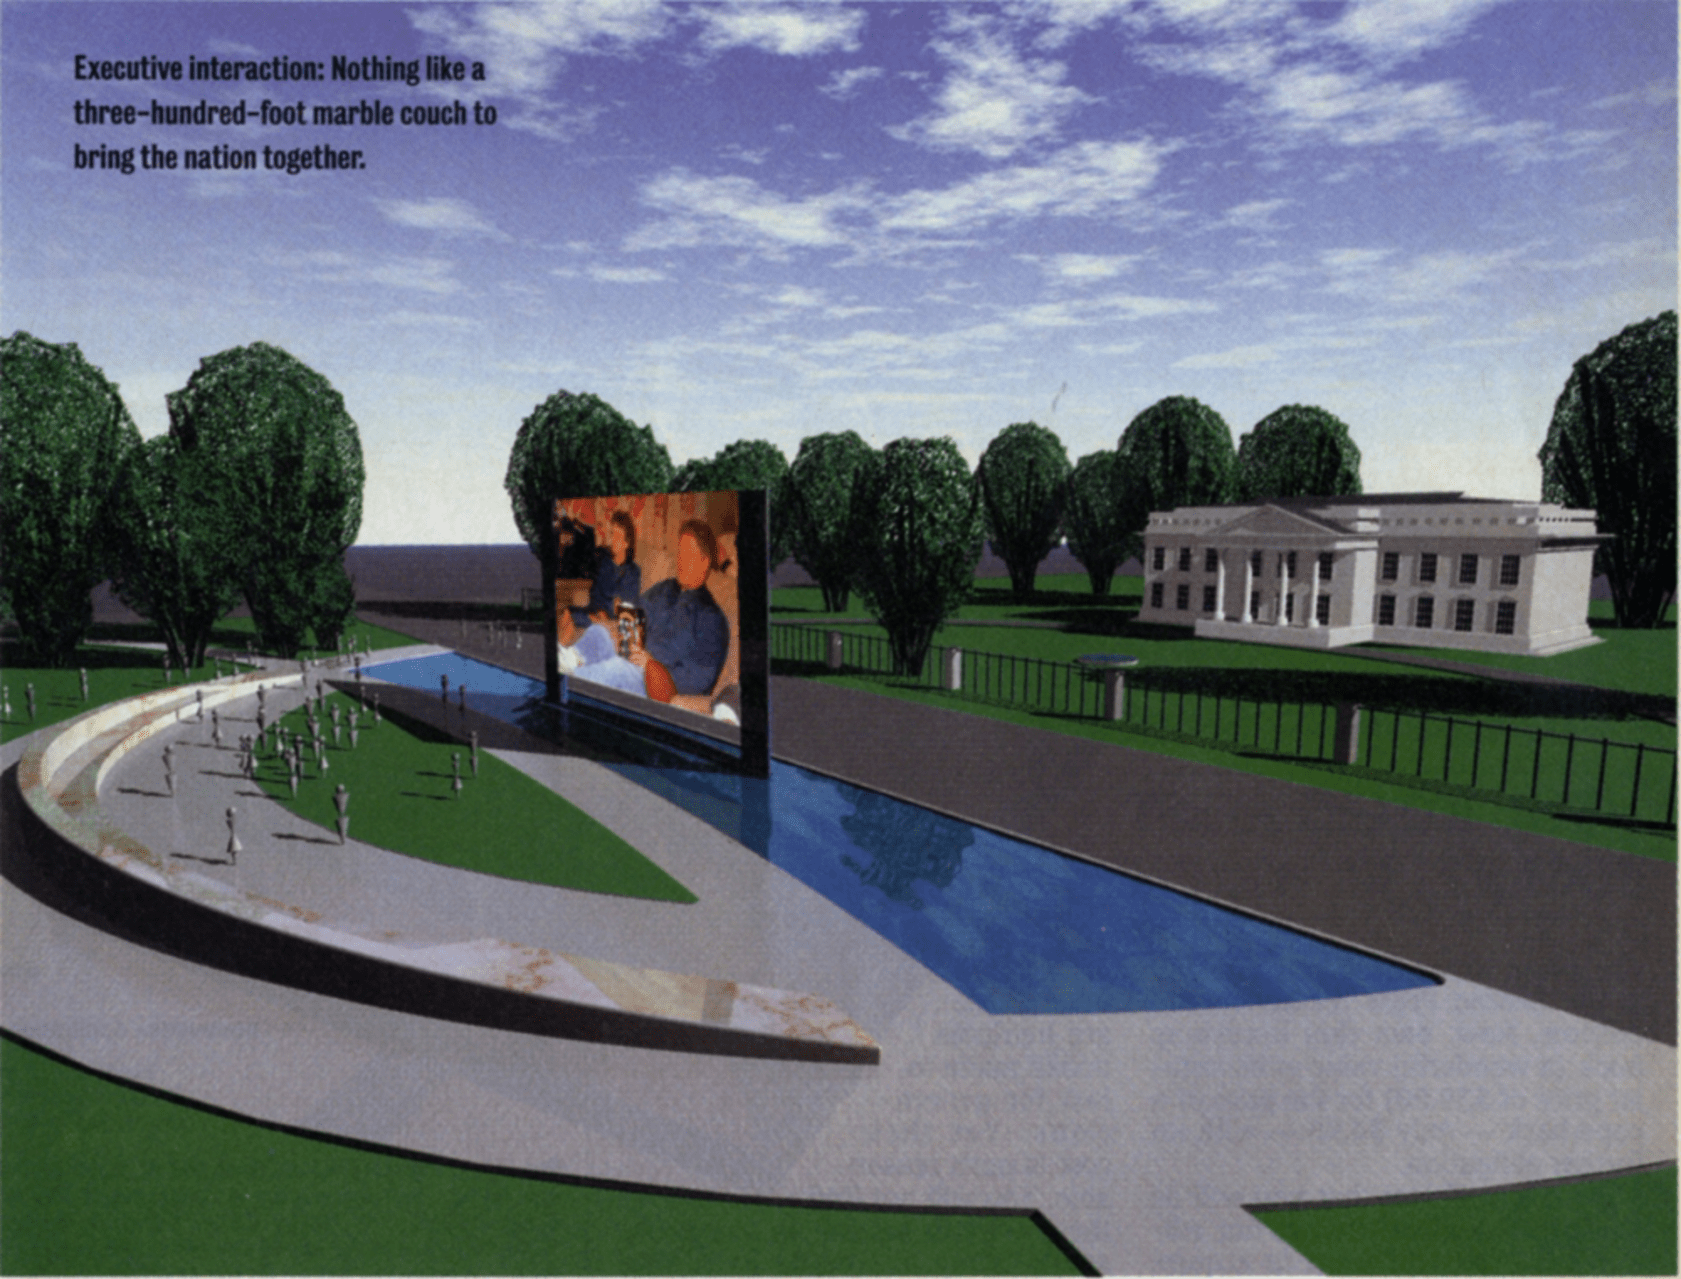 Rendering of the proposed National Sofa, to be located across Pennsylvania Avenue from the White House, by Jim Allegro, AIA, and Doug Michels, 1996. Allegro and Michels were concerned that the closure of Pennsylvania Avenue following the Oklahoma City bombing would further isolate the presidency from the people. They proposed the National Sofa as a place of virtual and physical interaction to address that gap. Credit: Copyright James Allegro, AIA and Doug Michels